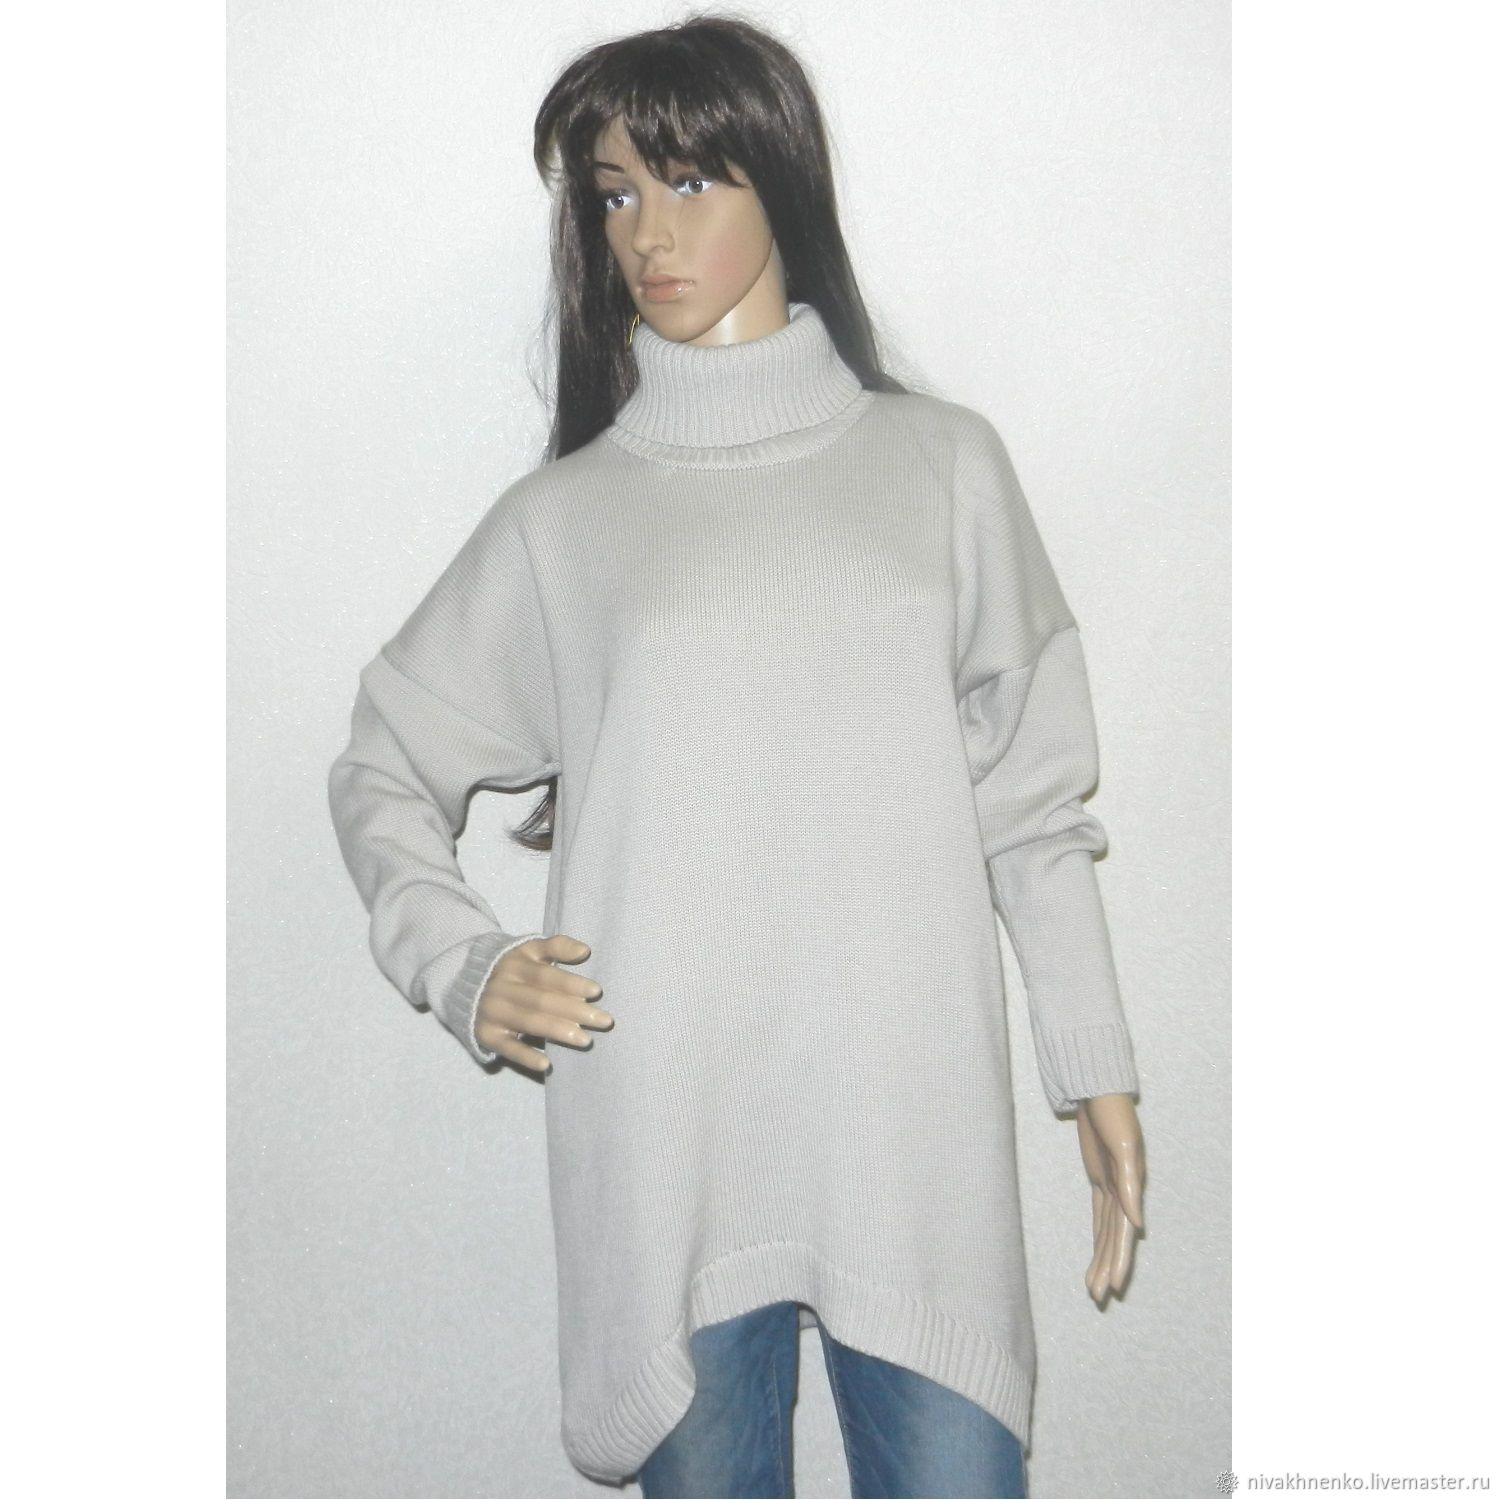 Sweater knitted oversized, Sweaters, Moscow,  Фото №1